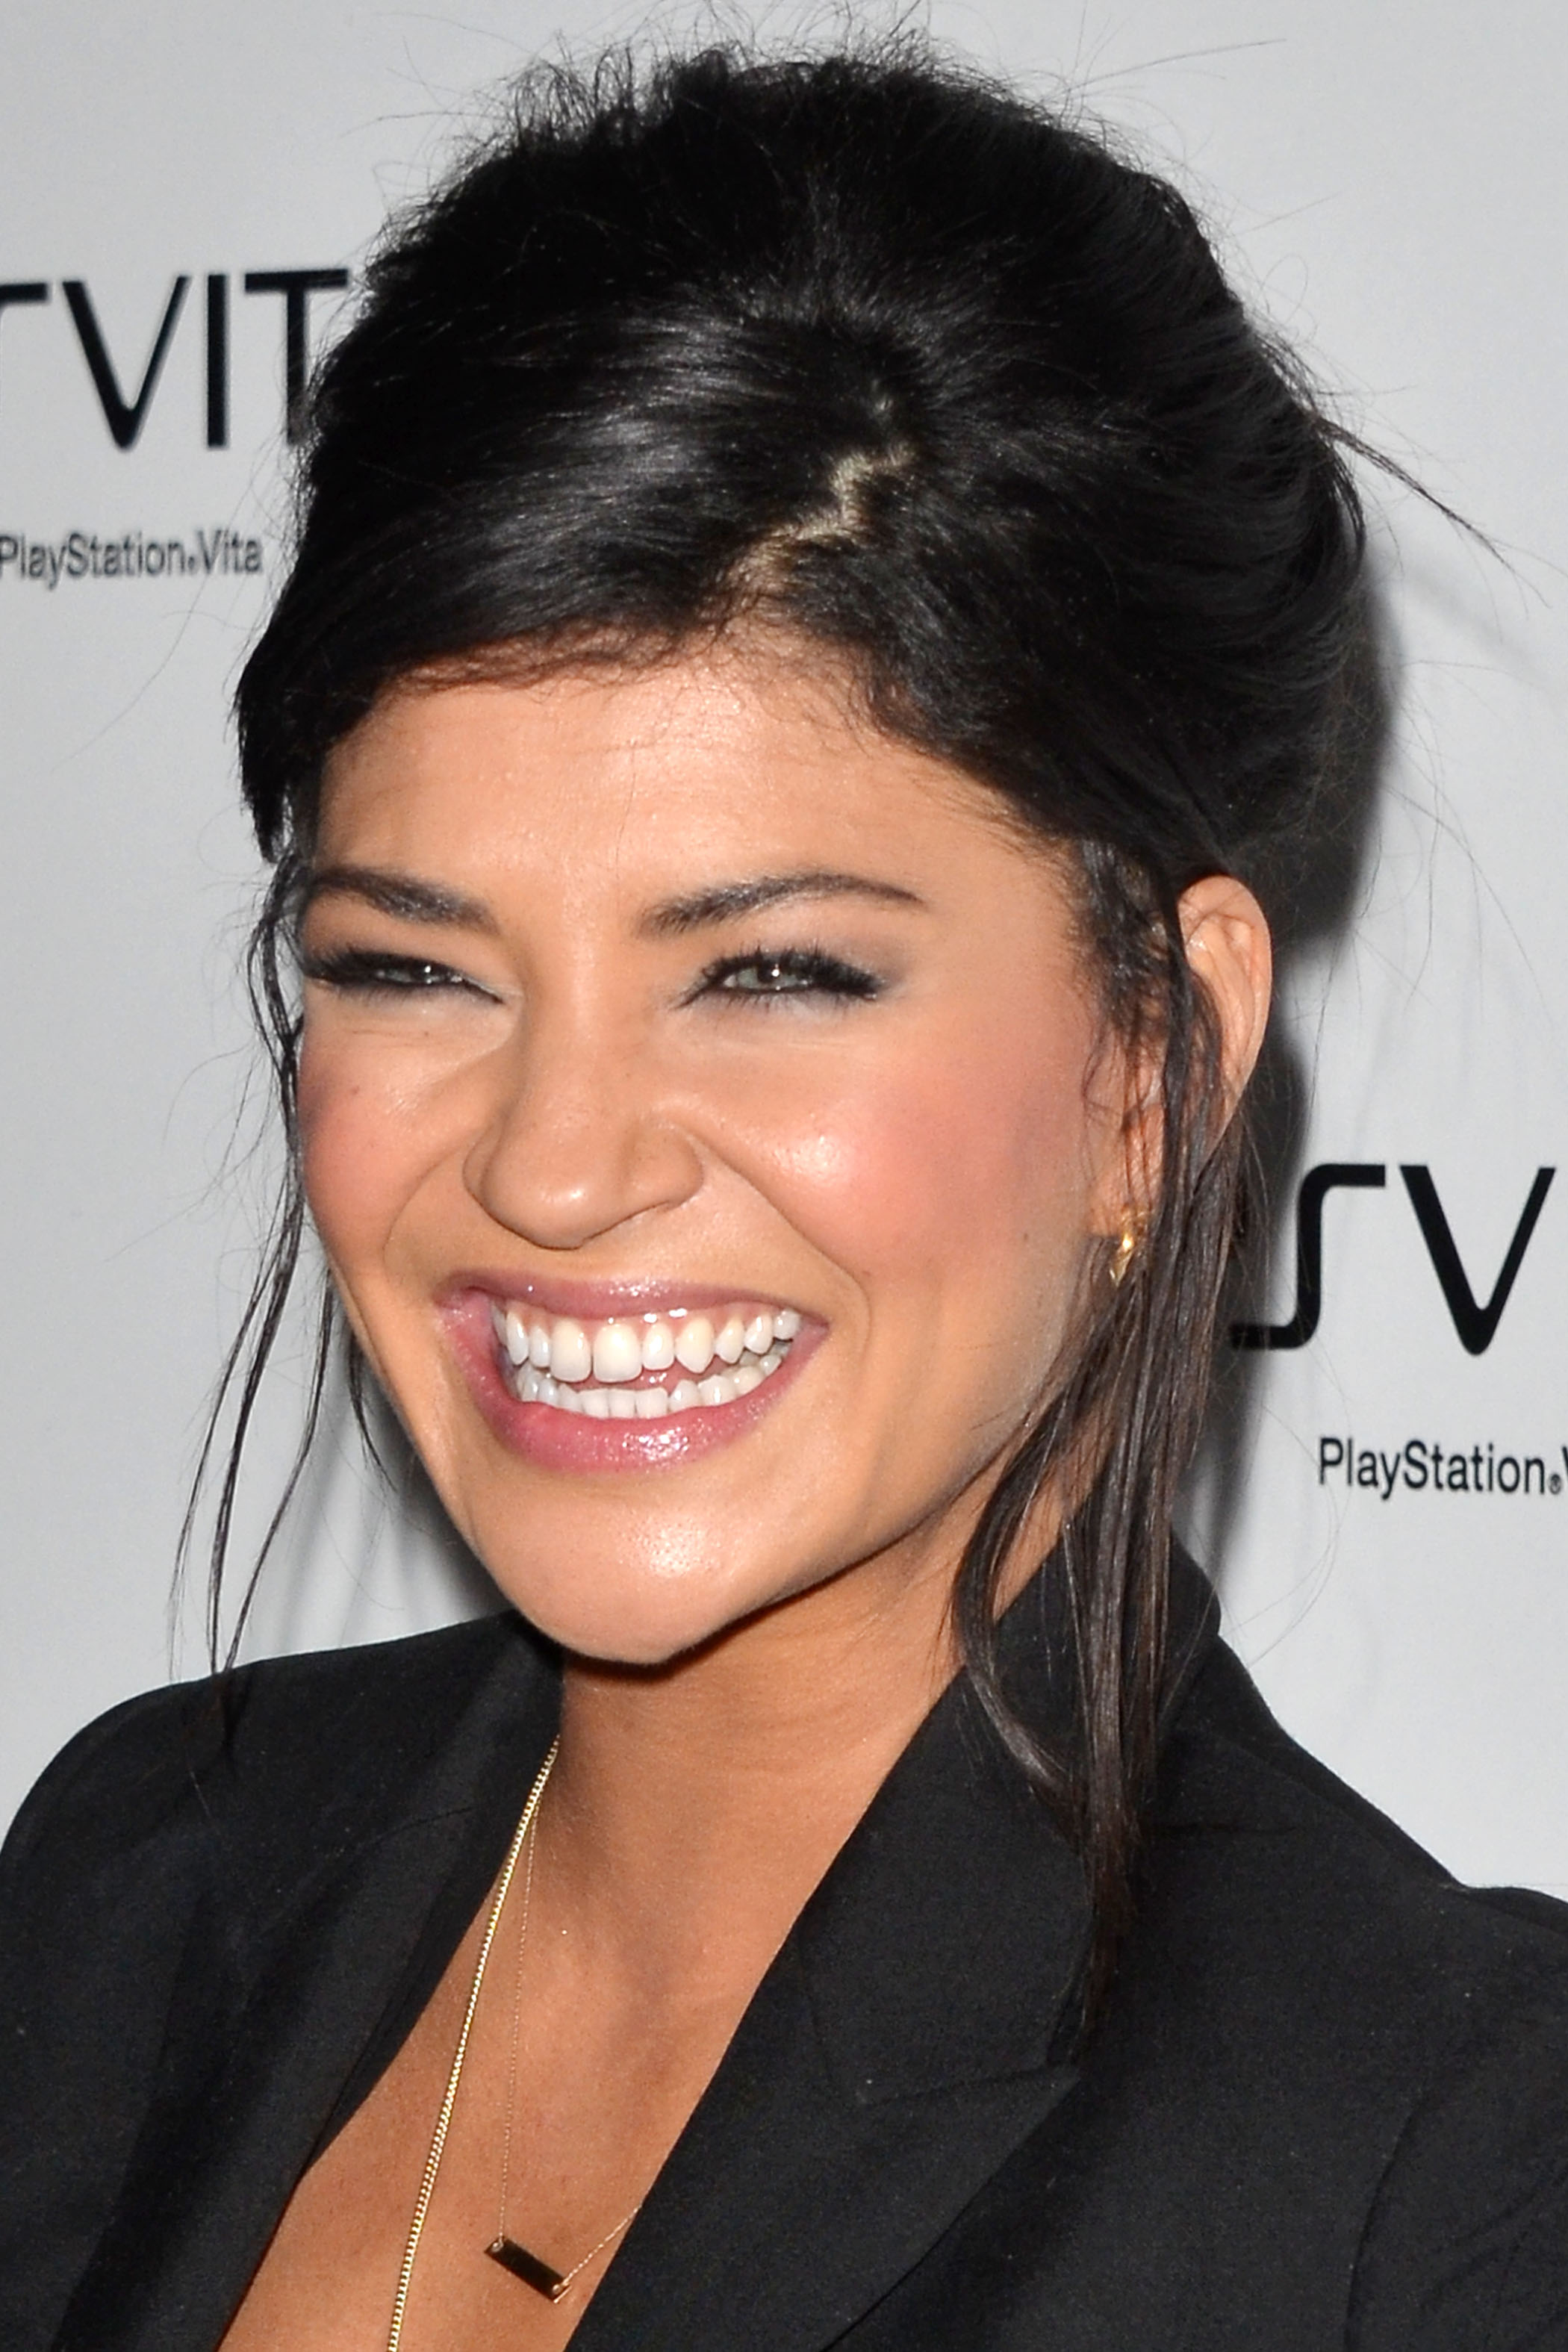 Джессика Зор, фото 1079. Jessica Szohr Launch of the Sony PS Vita in Hollywood - February 15, 2012, foto 1079